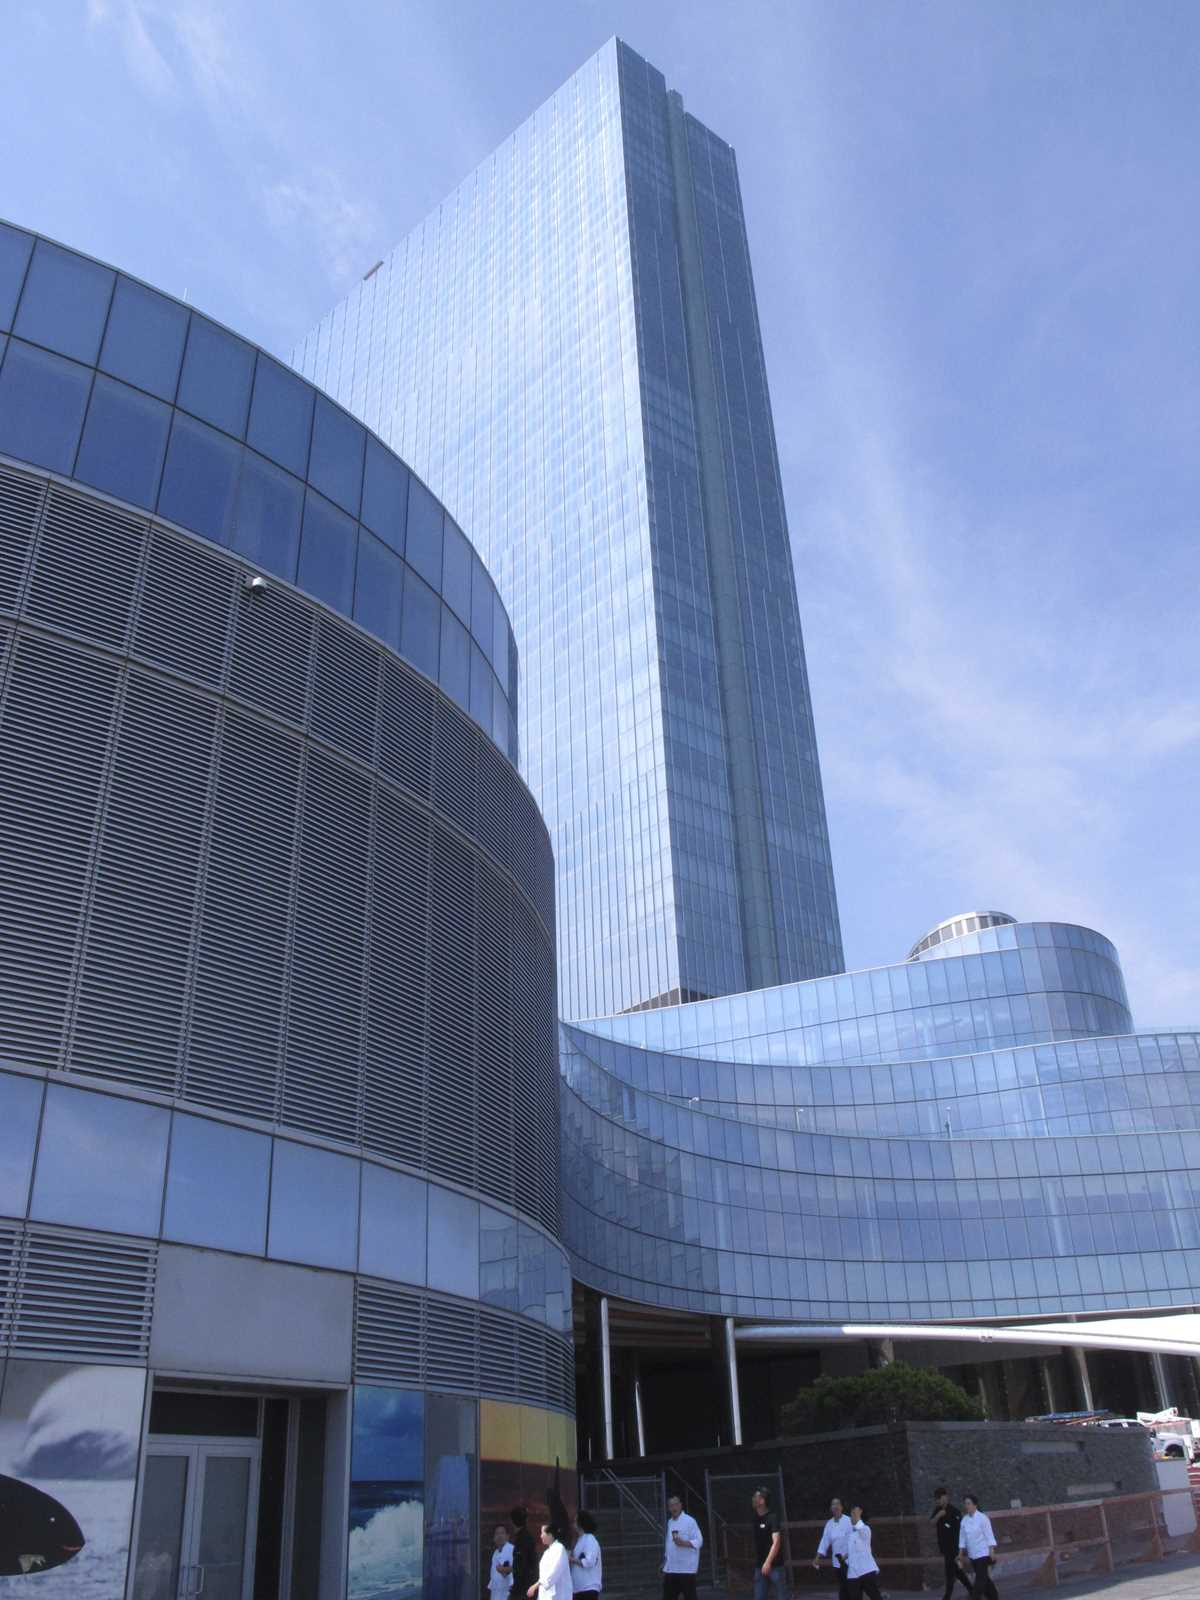 Atlantic City's Ocean Resort Casino (ex-Revel) seeks license